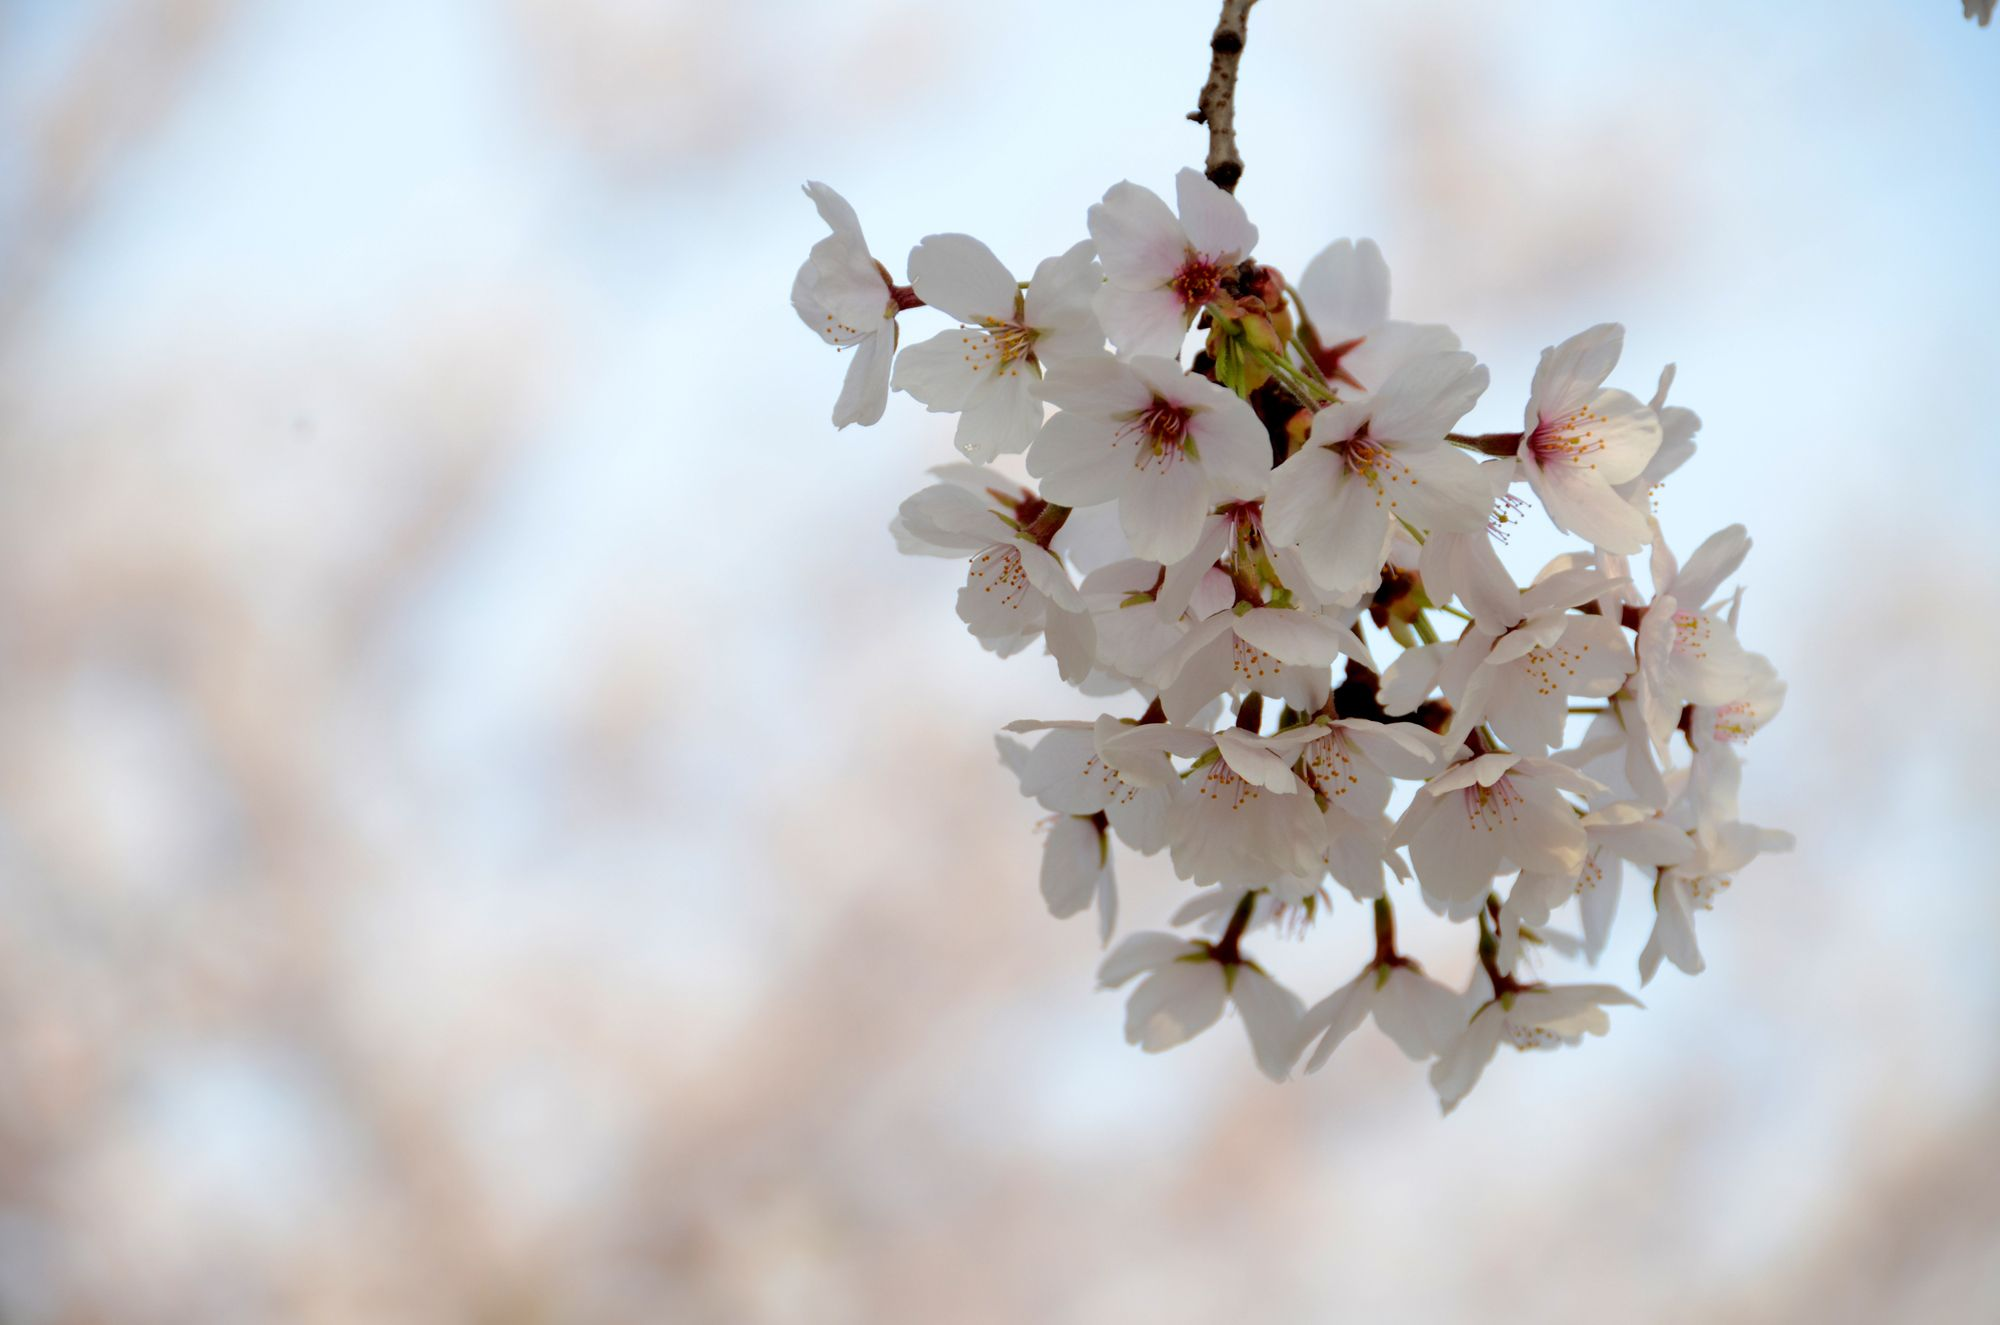 Korea Cherry Blossom 2021 Forecast The Best Time 9 Best Places To See Cherry Blossoms In Korea Living Nomads Travel Tips Guides News Information Cherry Blossom Korea Travel Places To See